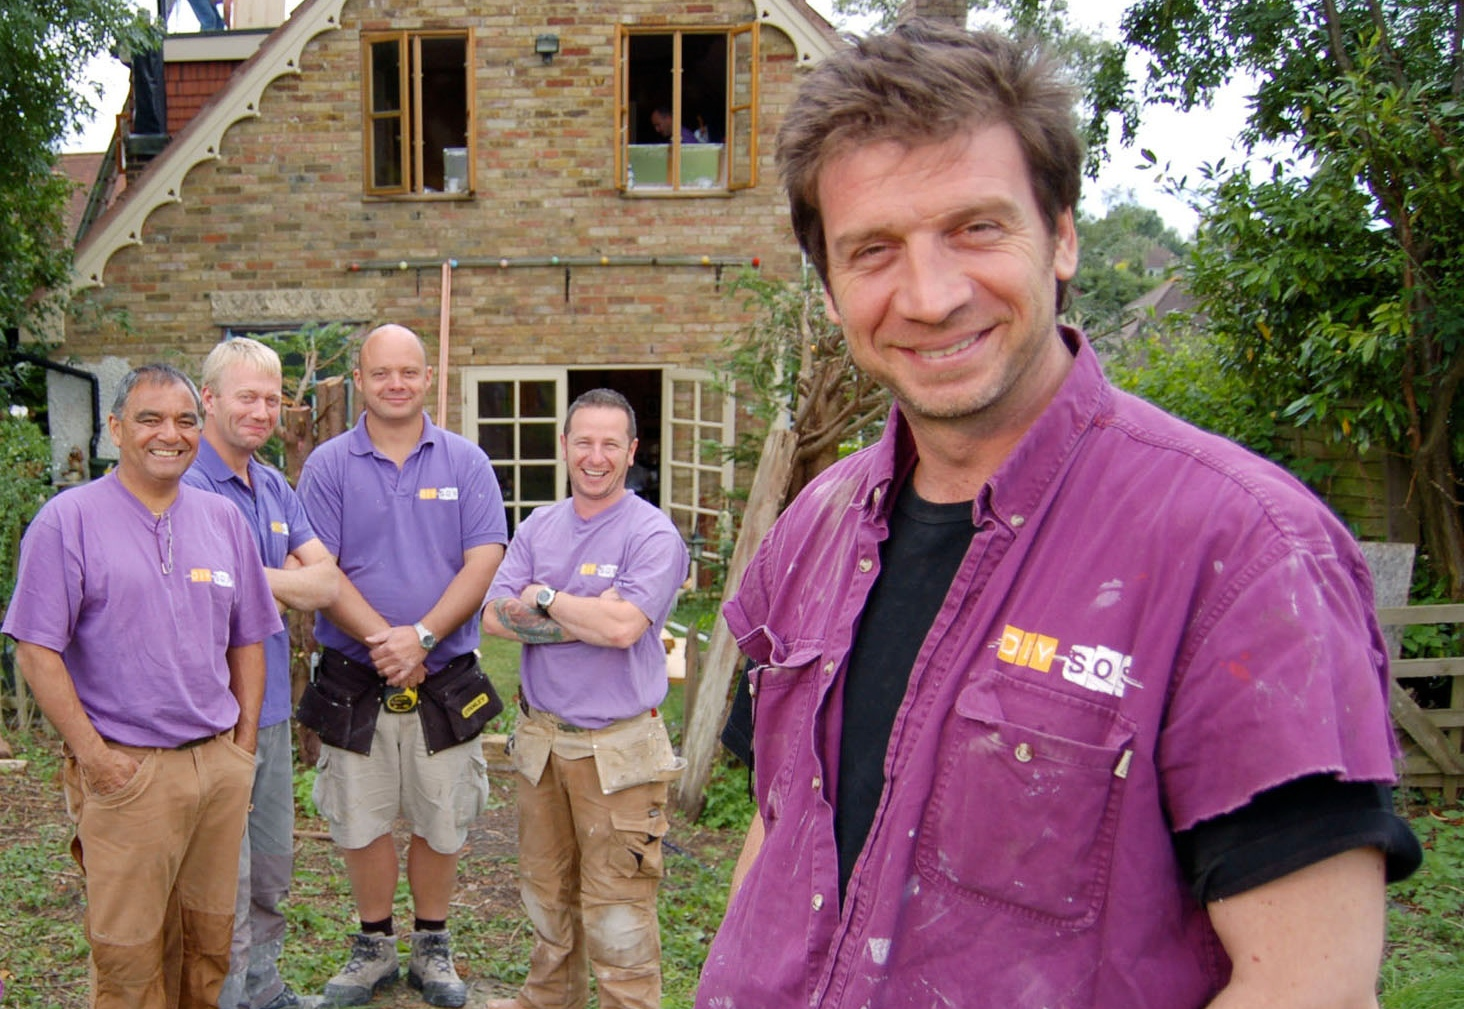 Diy Sos Really Channel